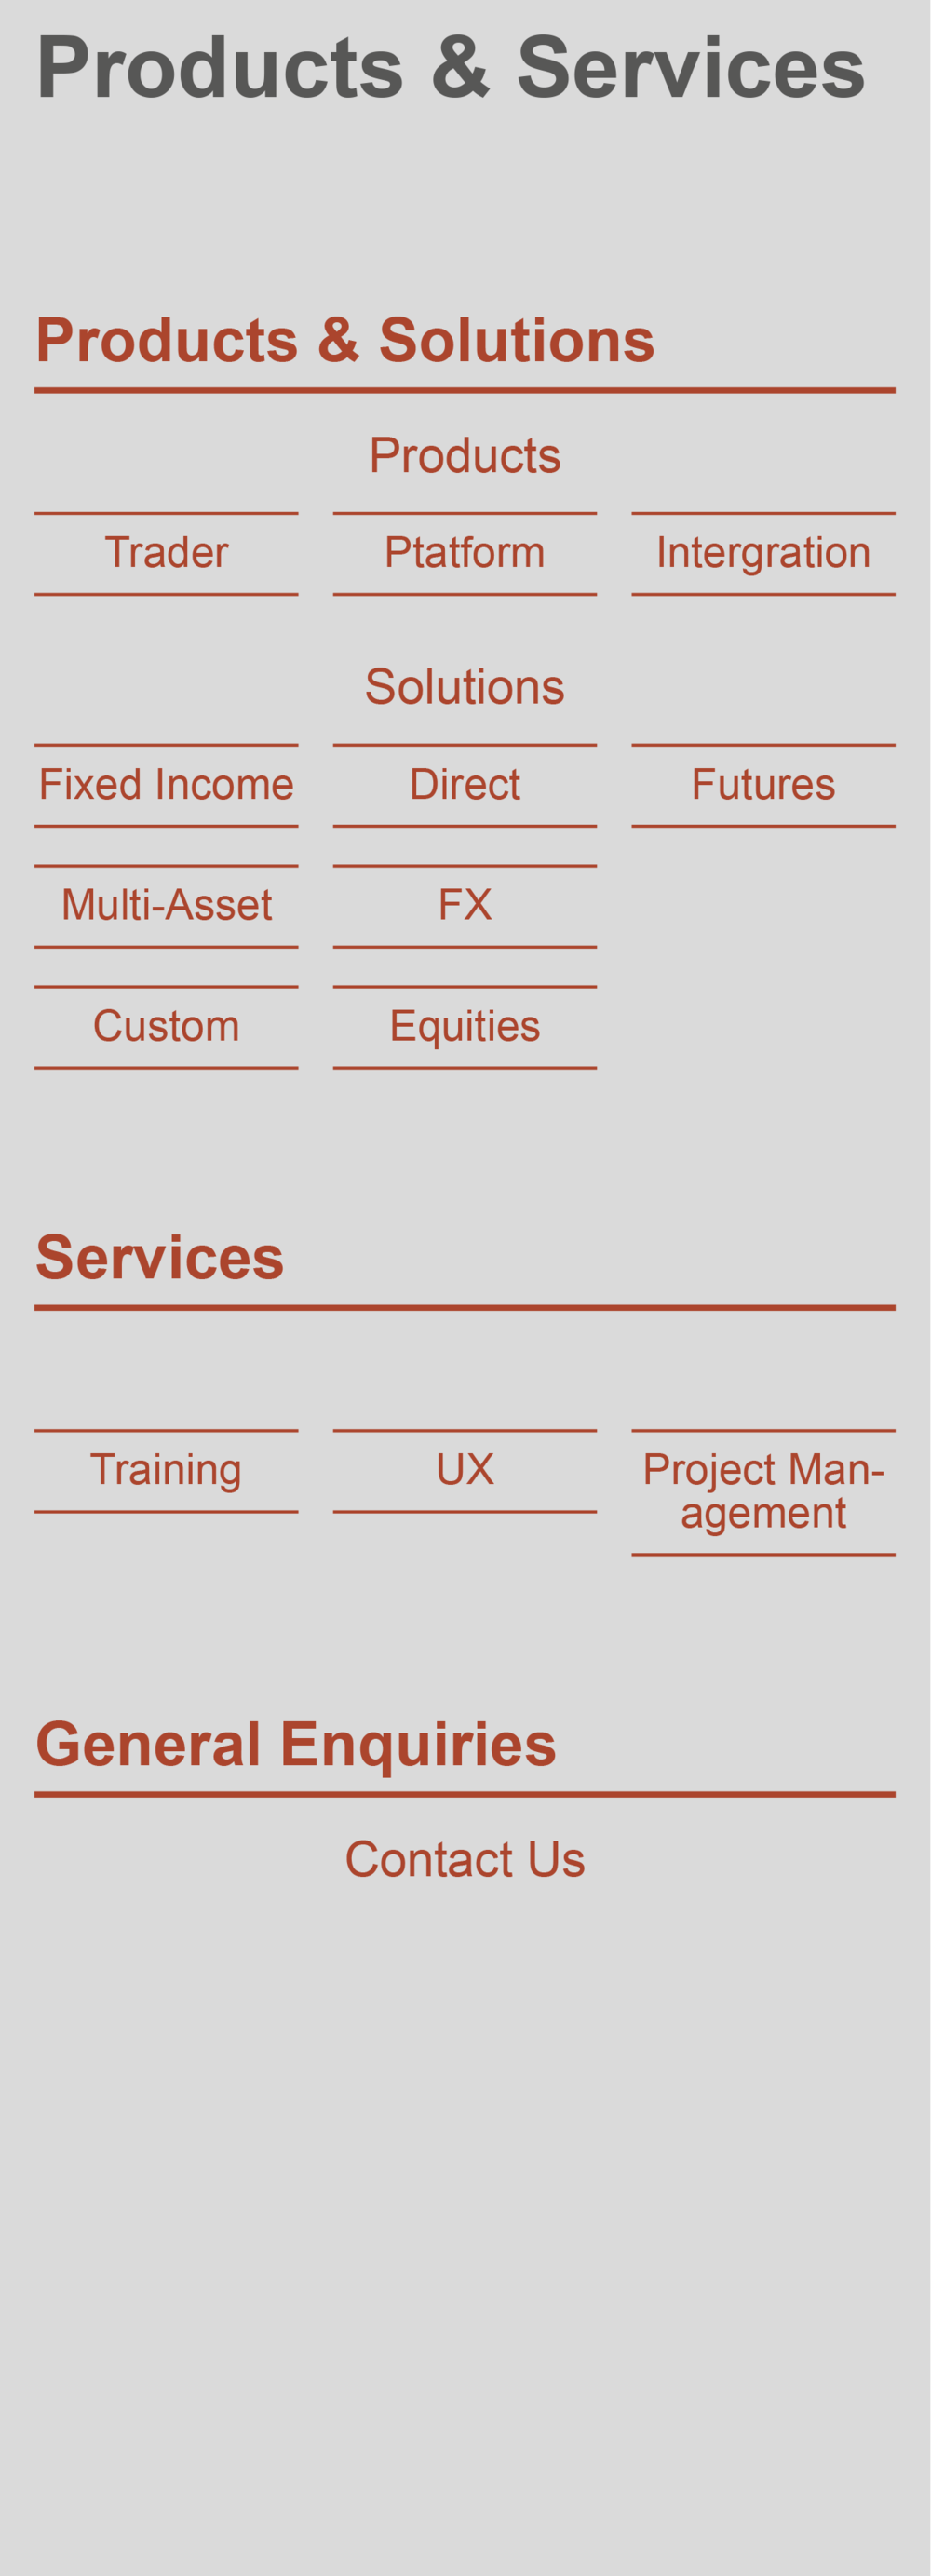 Product page information structure.